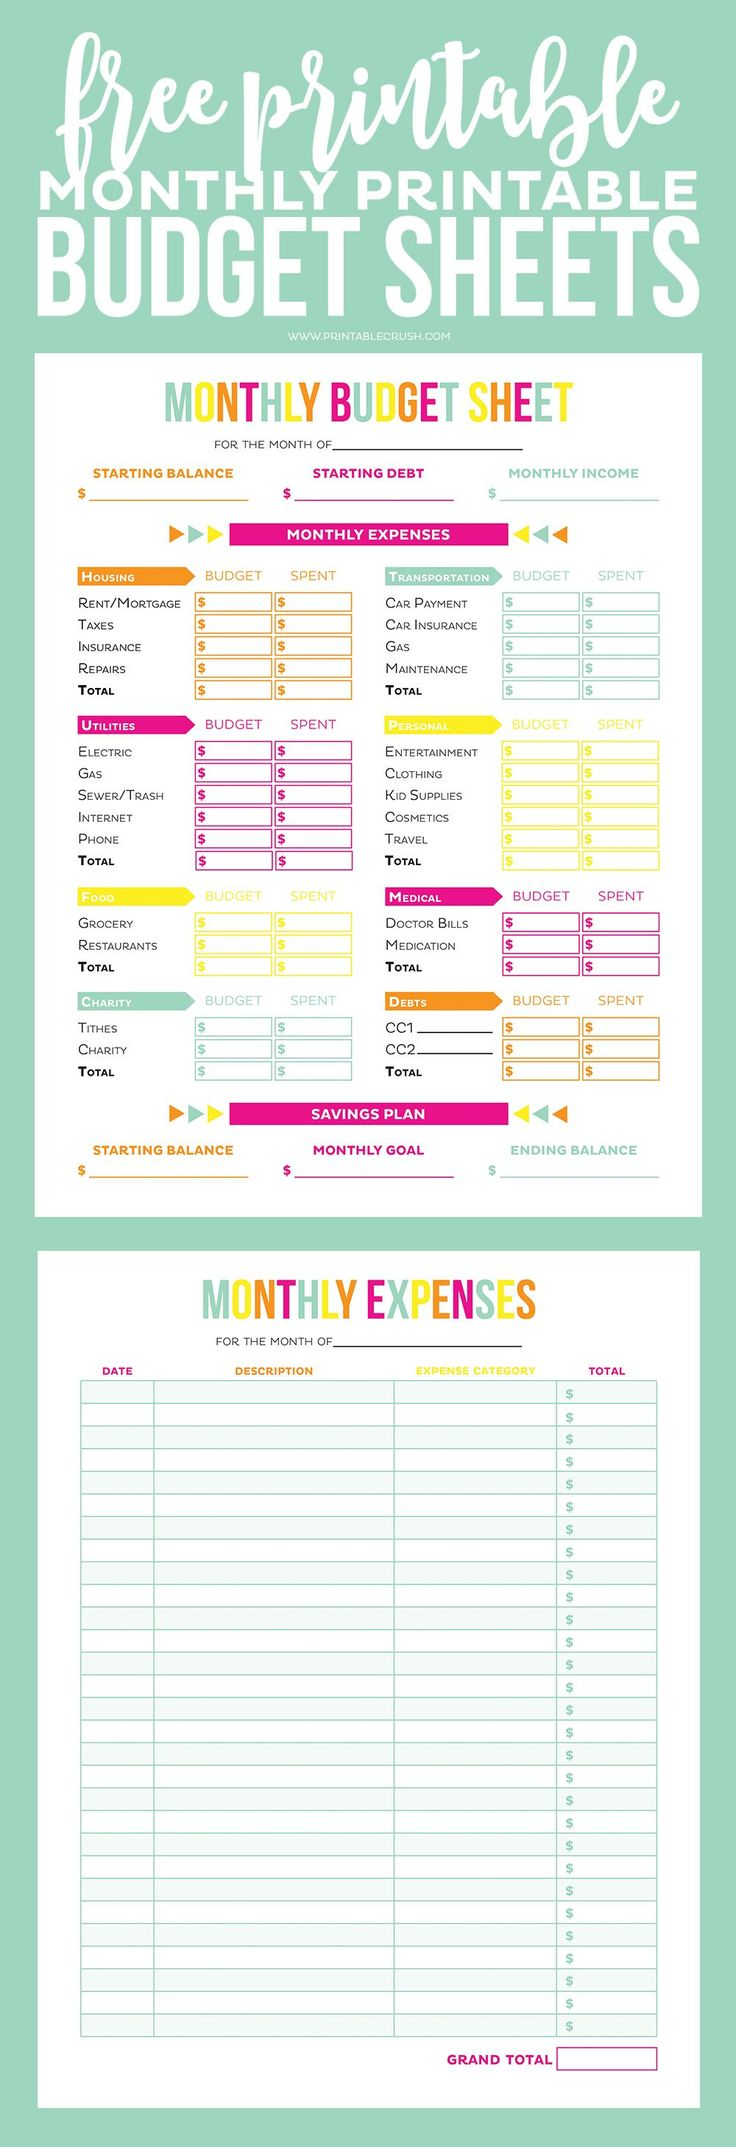 Get your finances in order with these FREE Printable Budget Sheets! Includes monthly budget and expense sheets so you can easily keep track of your money!